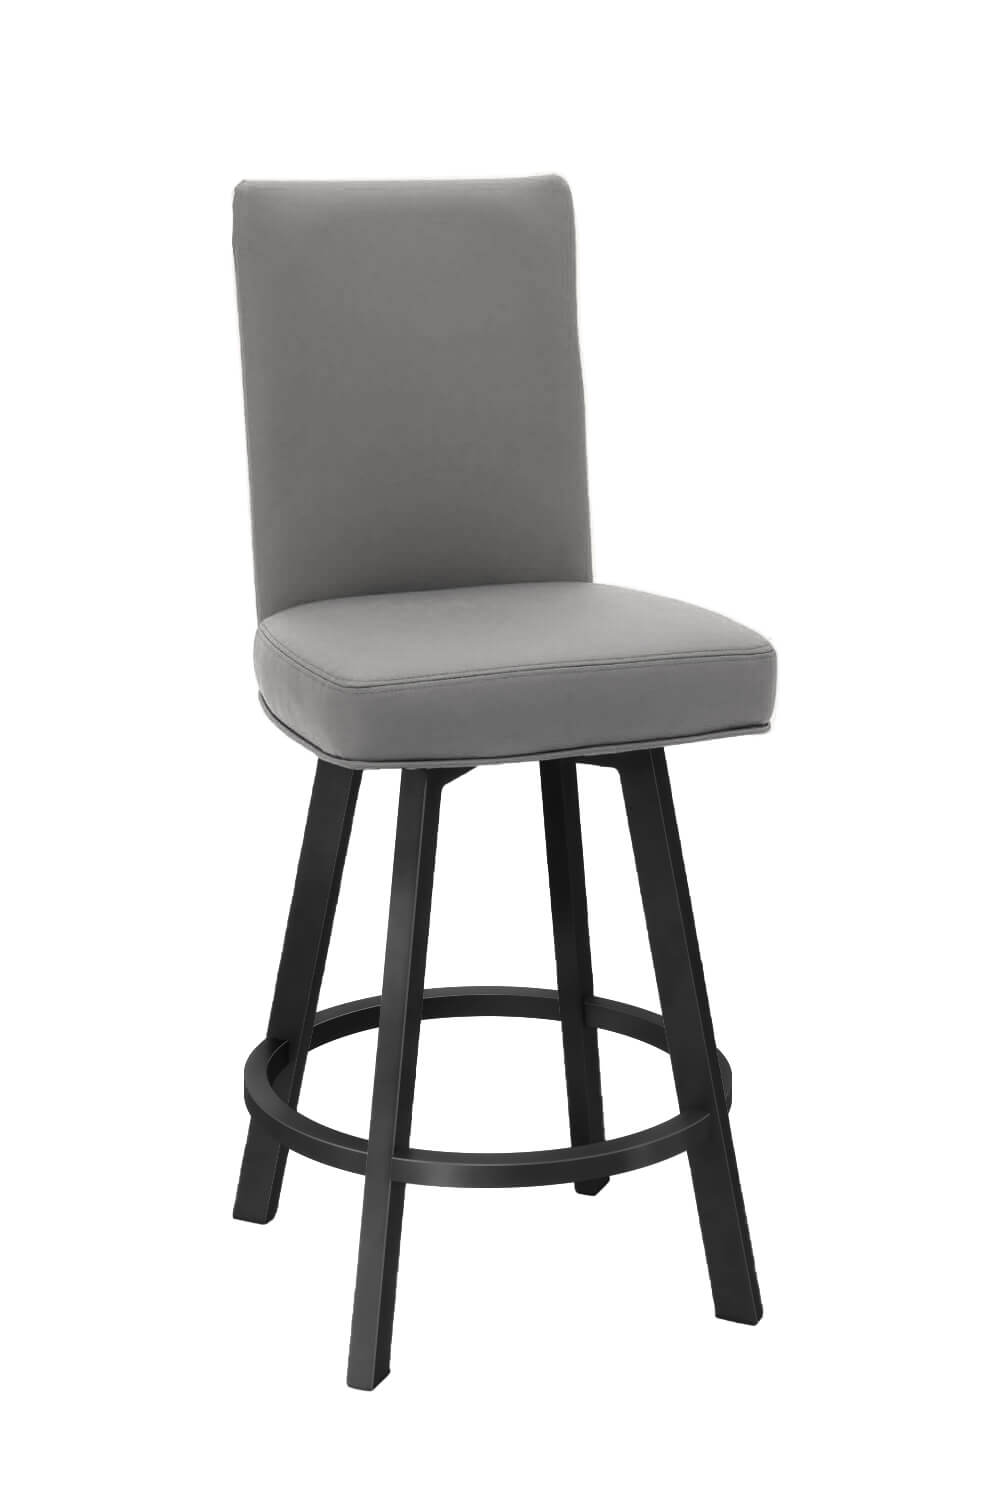 Wesley Allen's Jackson Upholstered Swivel Barstool with Tall Back and Metal Base and Seat Back Cushion